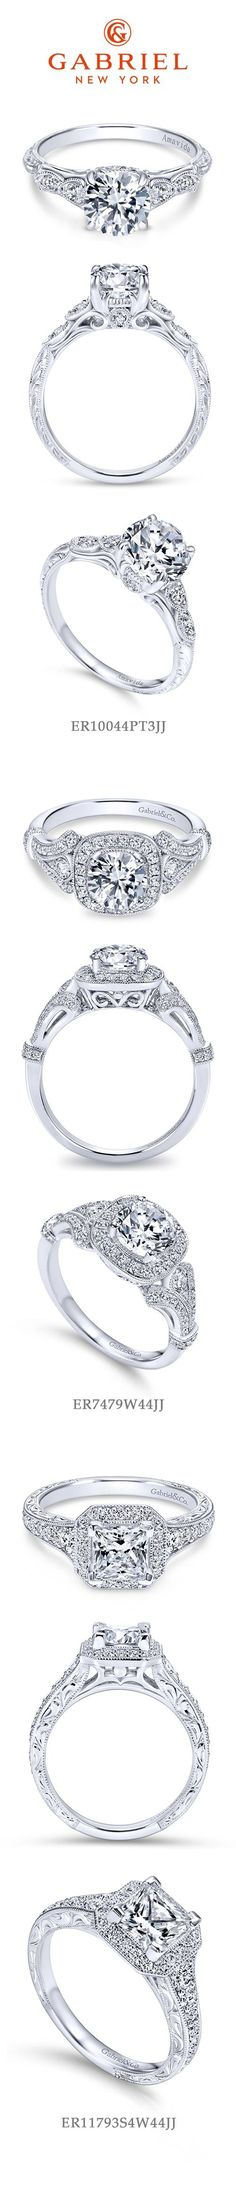 Gabriel NY - Preferred Fine Jewelry and Bridal Brand. Our top 3 Vintage Engagement Rings. Varying from round, princess, halo, etc! Find more our beautiful engagement rings for your loved one by checking out your nearest retailer-> https://www.gabrielny.com/storelocator